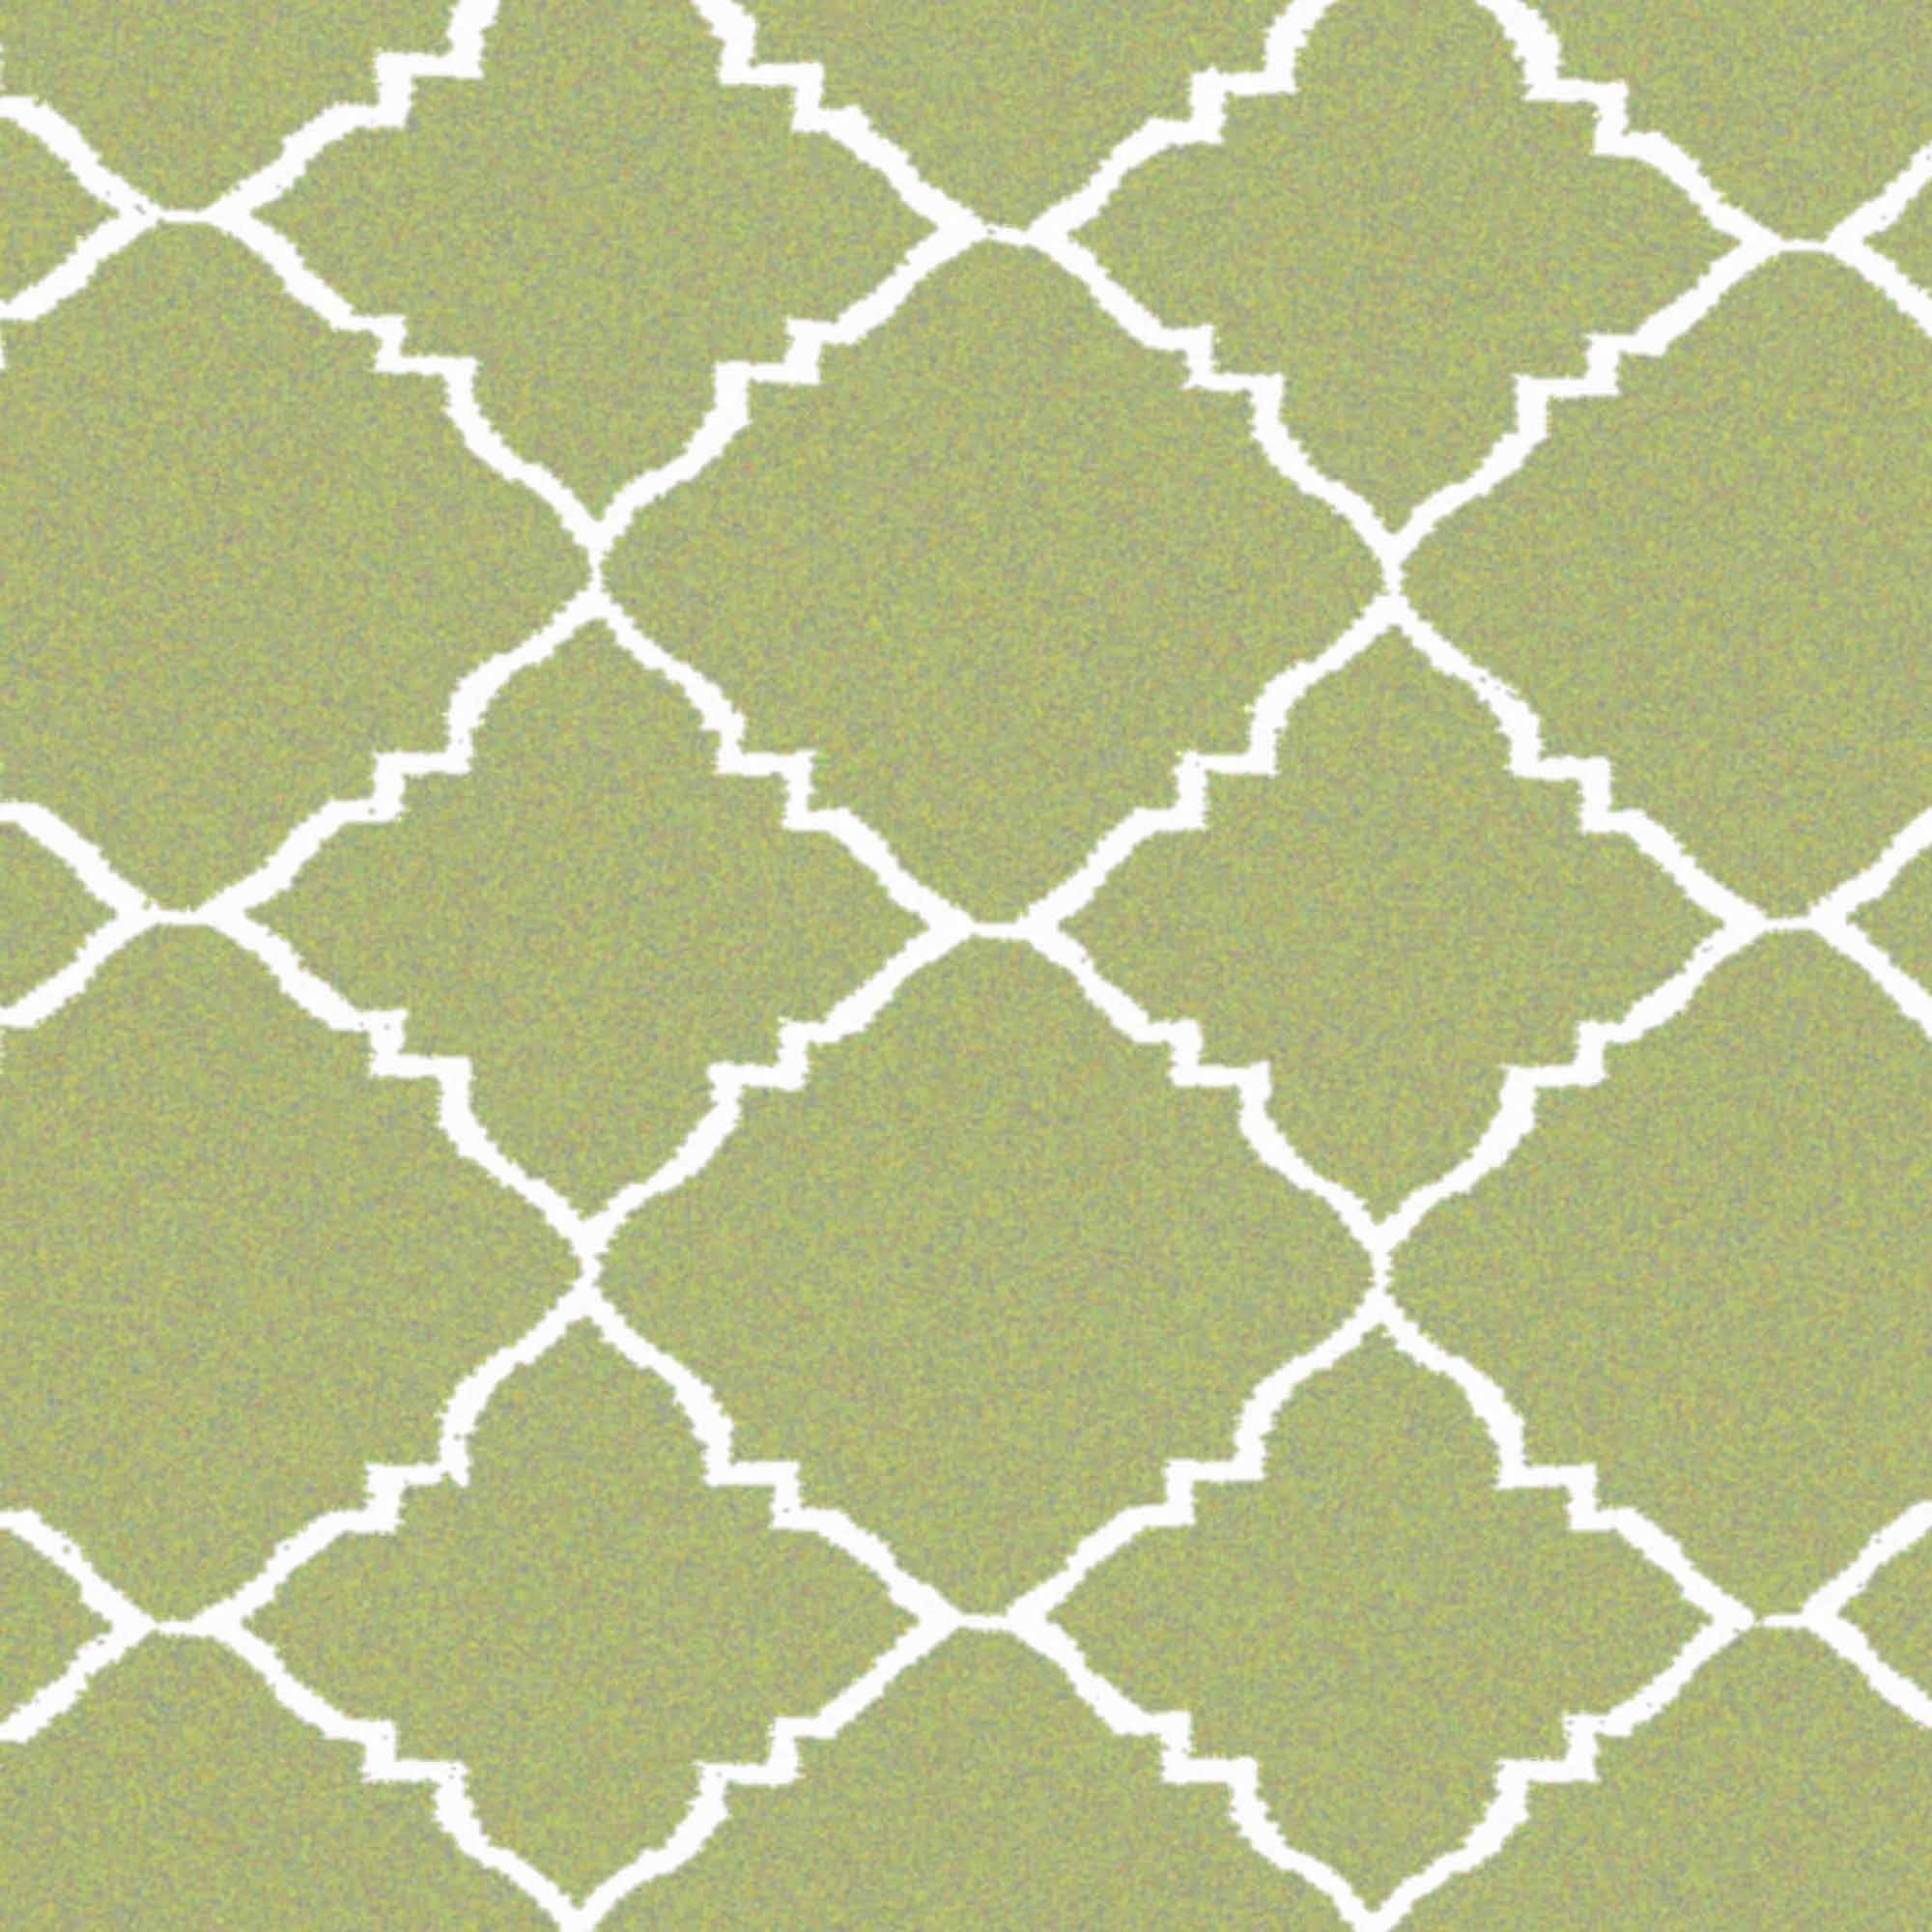 Art of Knot Prichard Hand Woven Gate Scroll Flatweave Wool Area Rug, Green